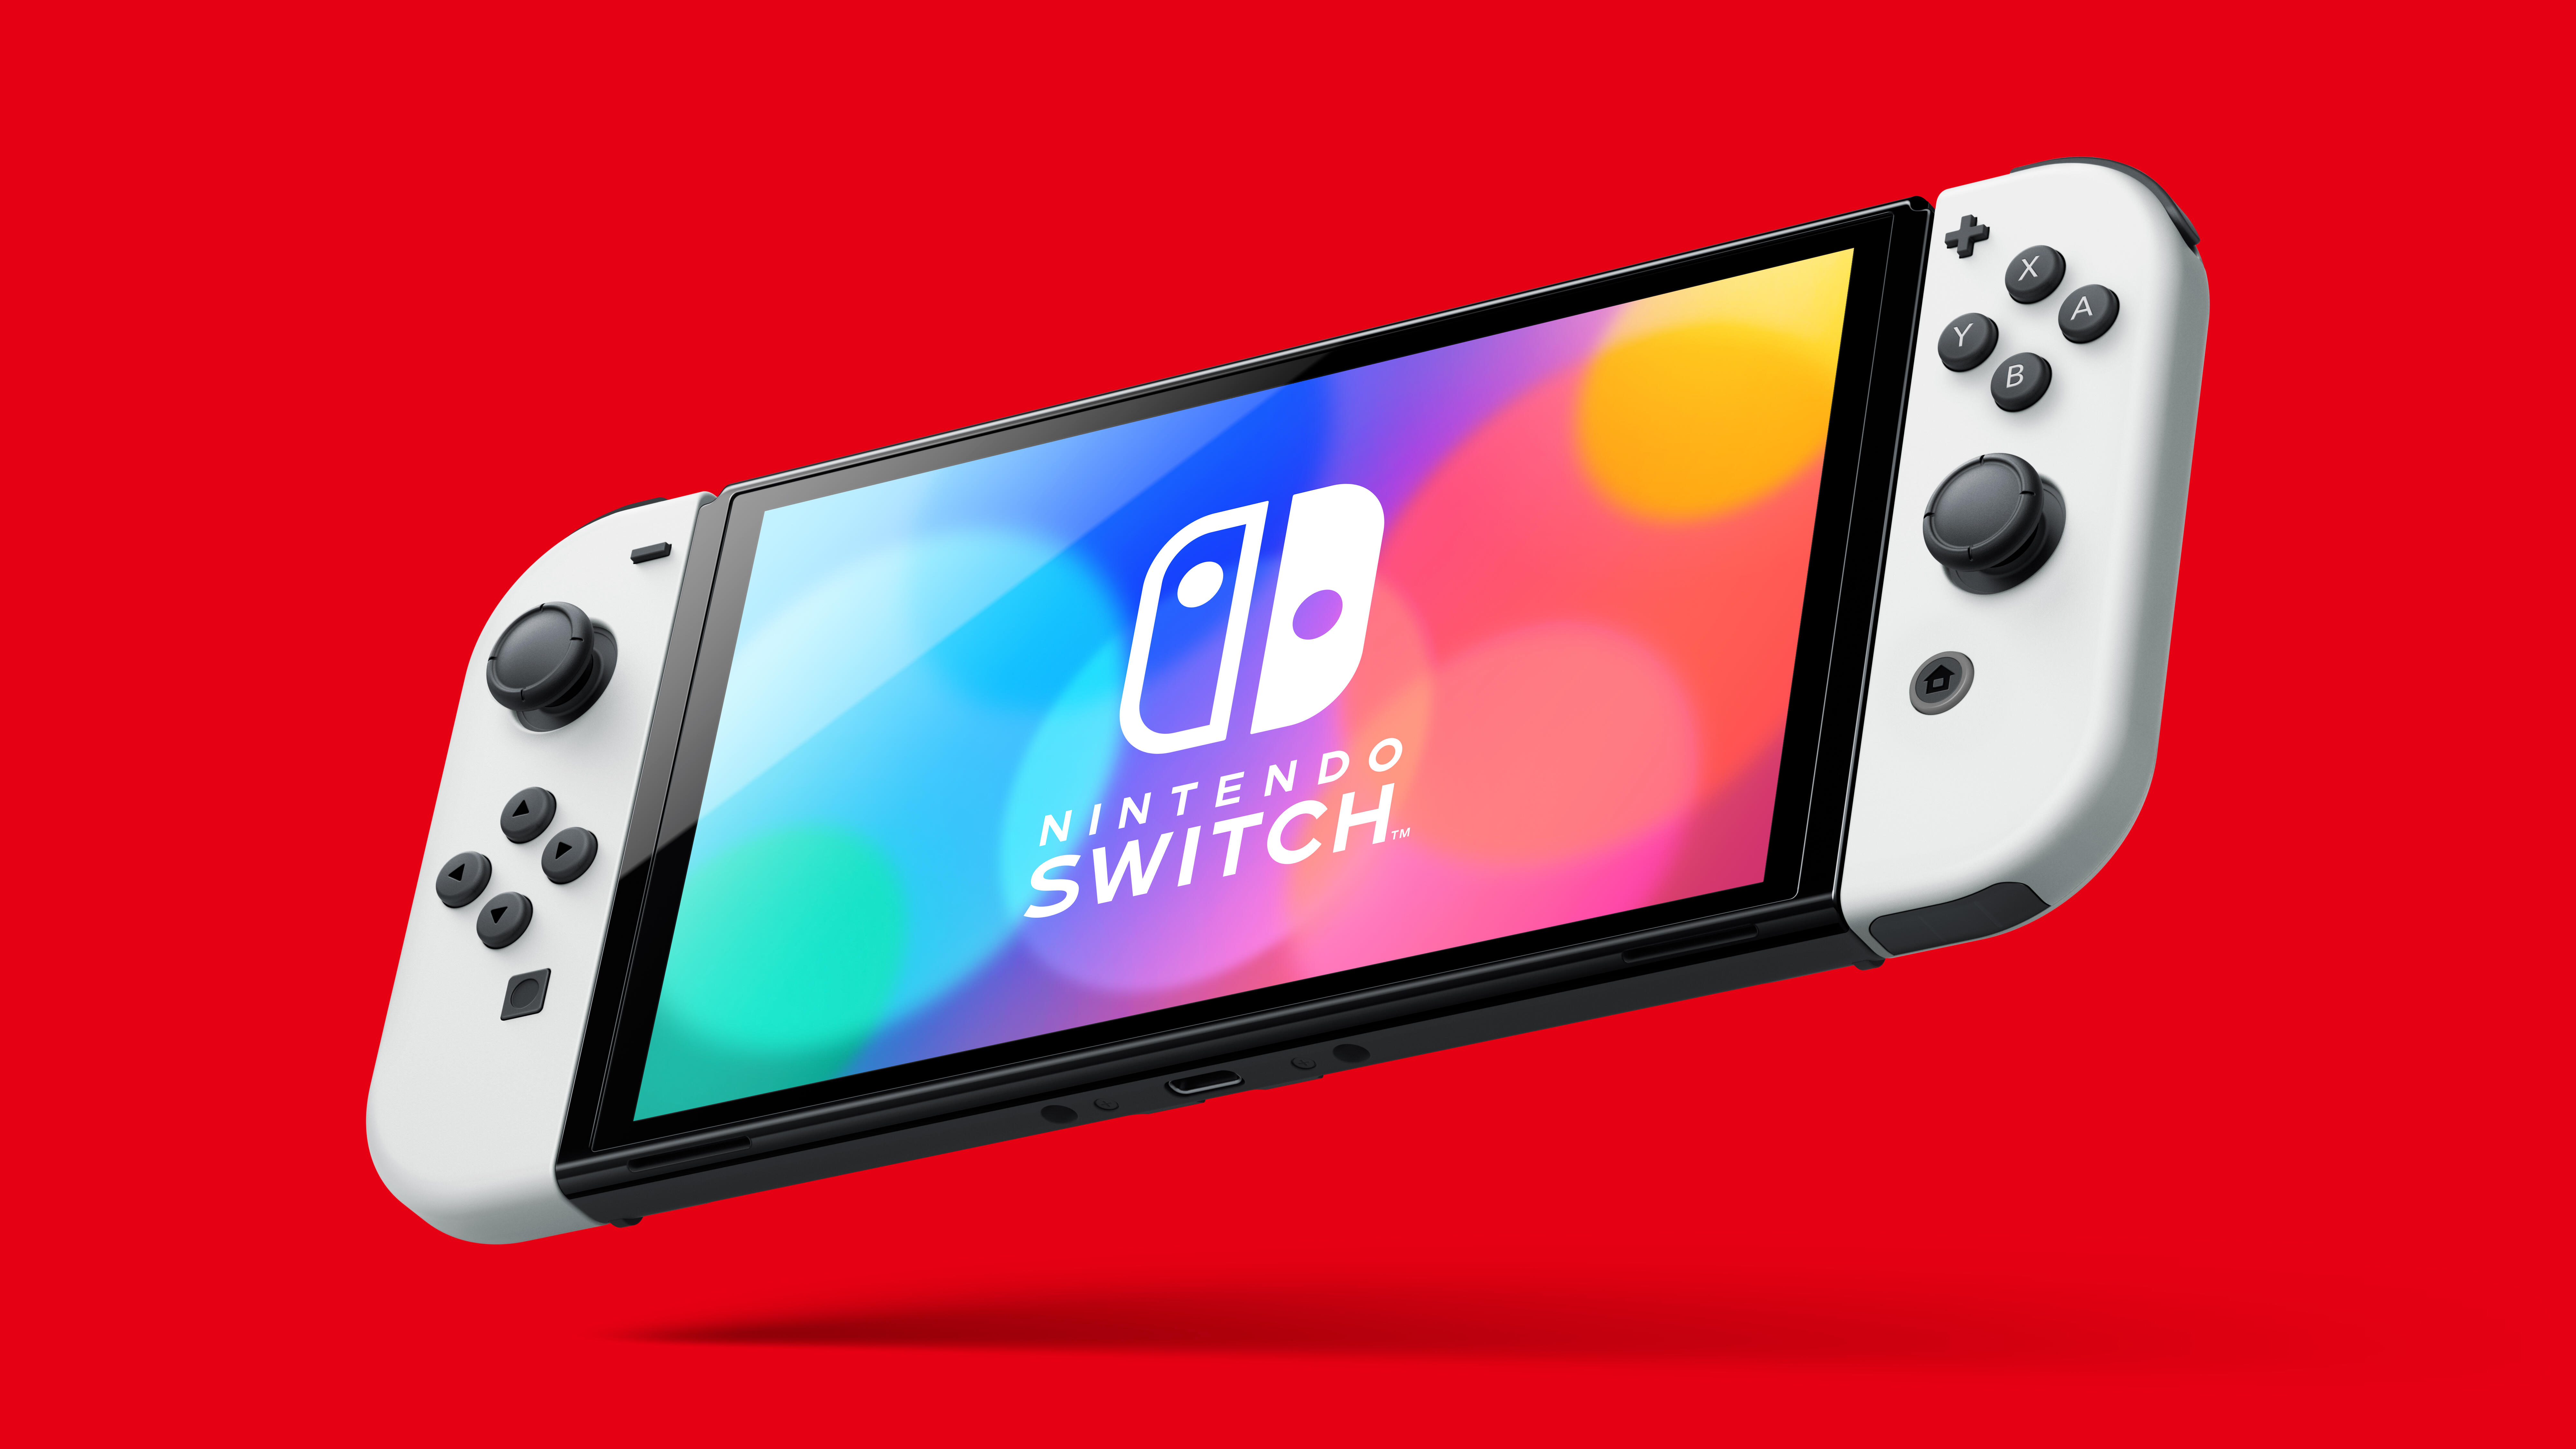 Nintendo Switch OLED preorder: Where to look for stock